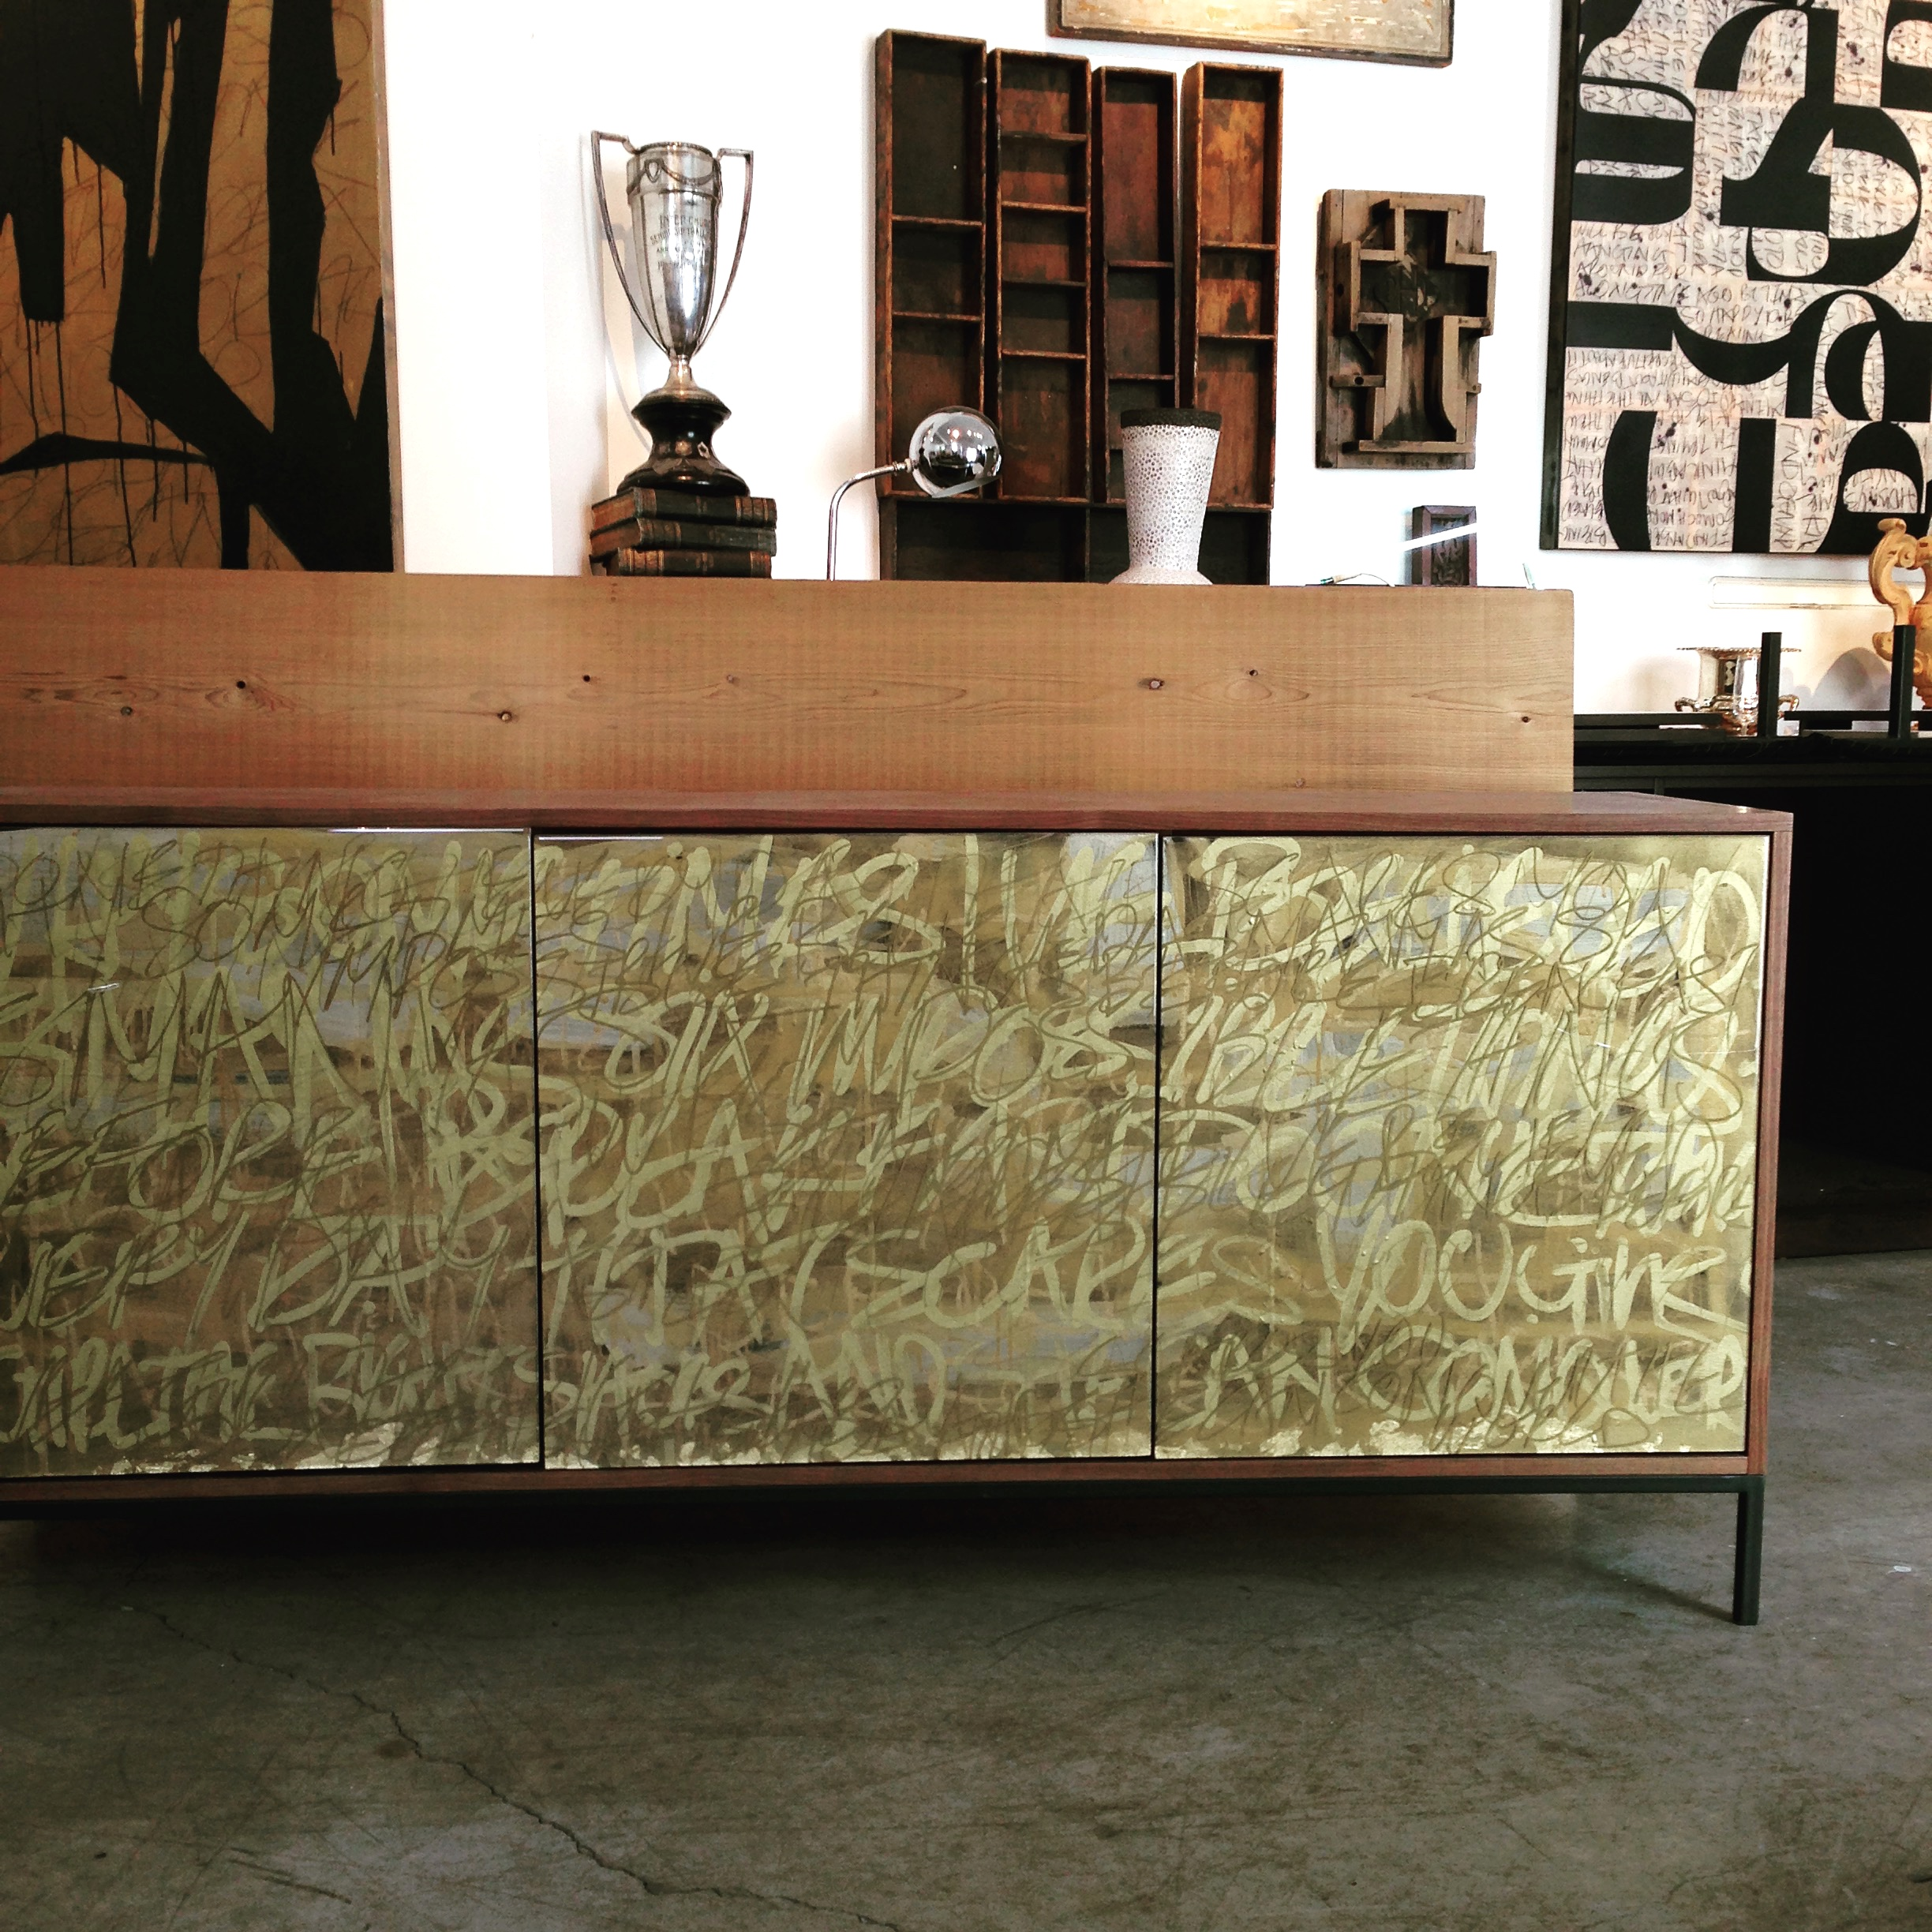 Morgan Clayhall studio, featuring Gold Graffiti Cabinet and artwork by Murray Duncan